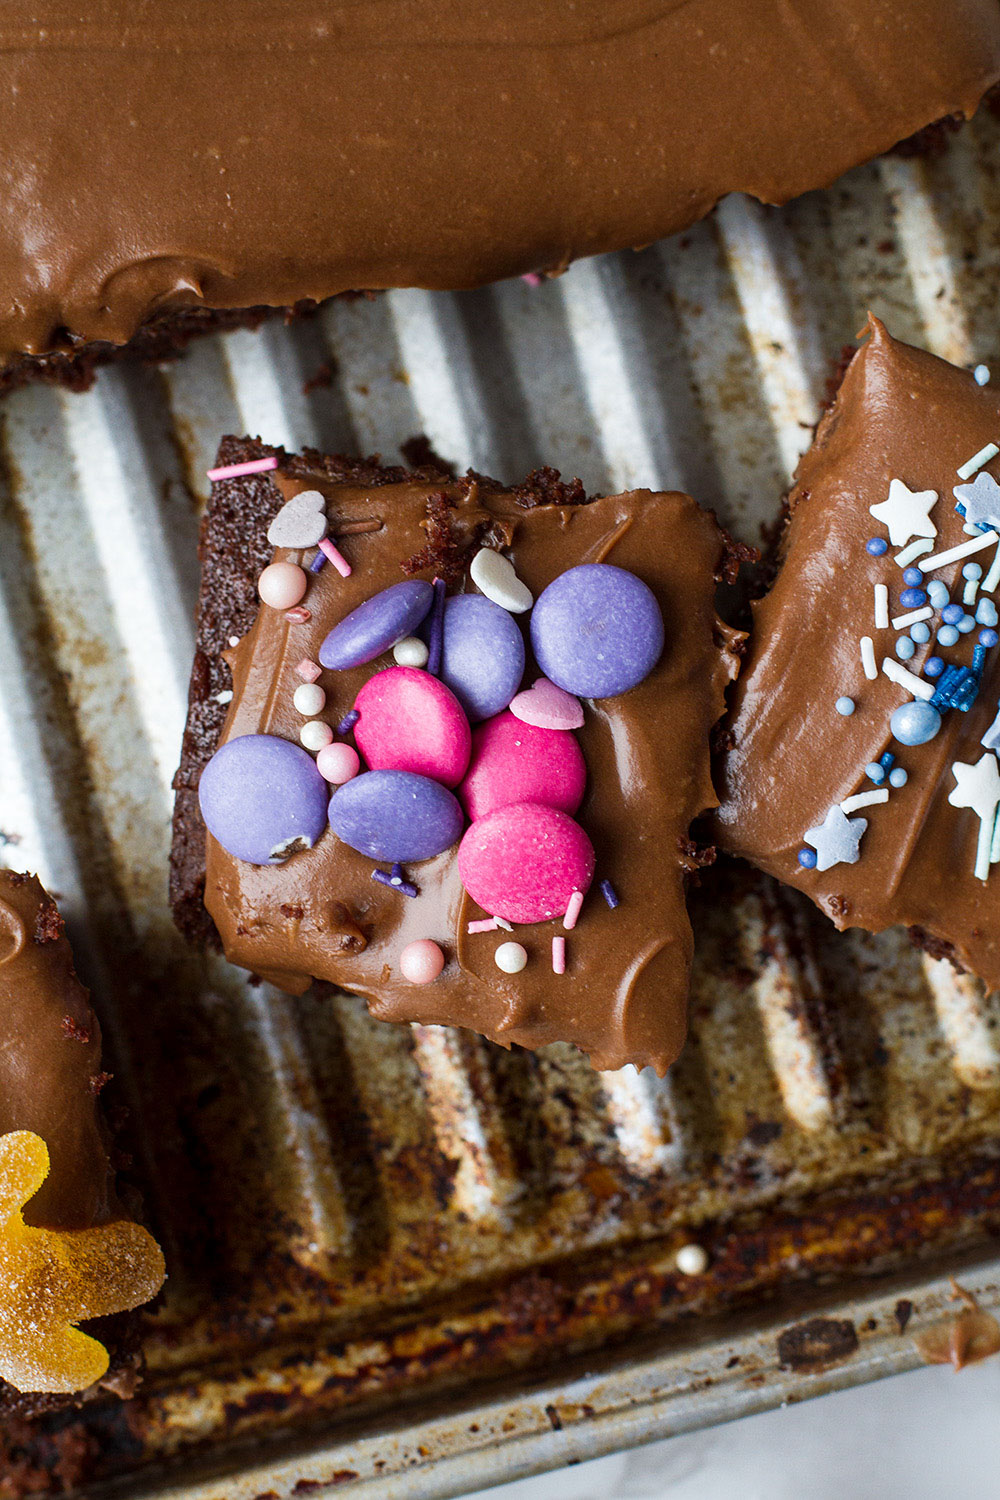 Chocolate cake topped with pink Smarties.